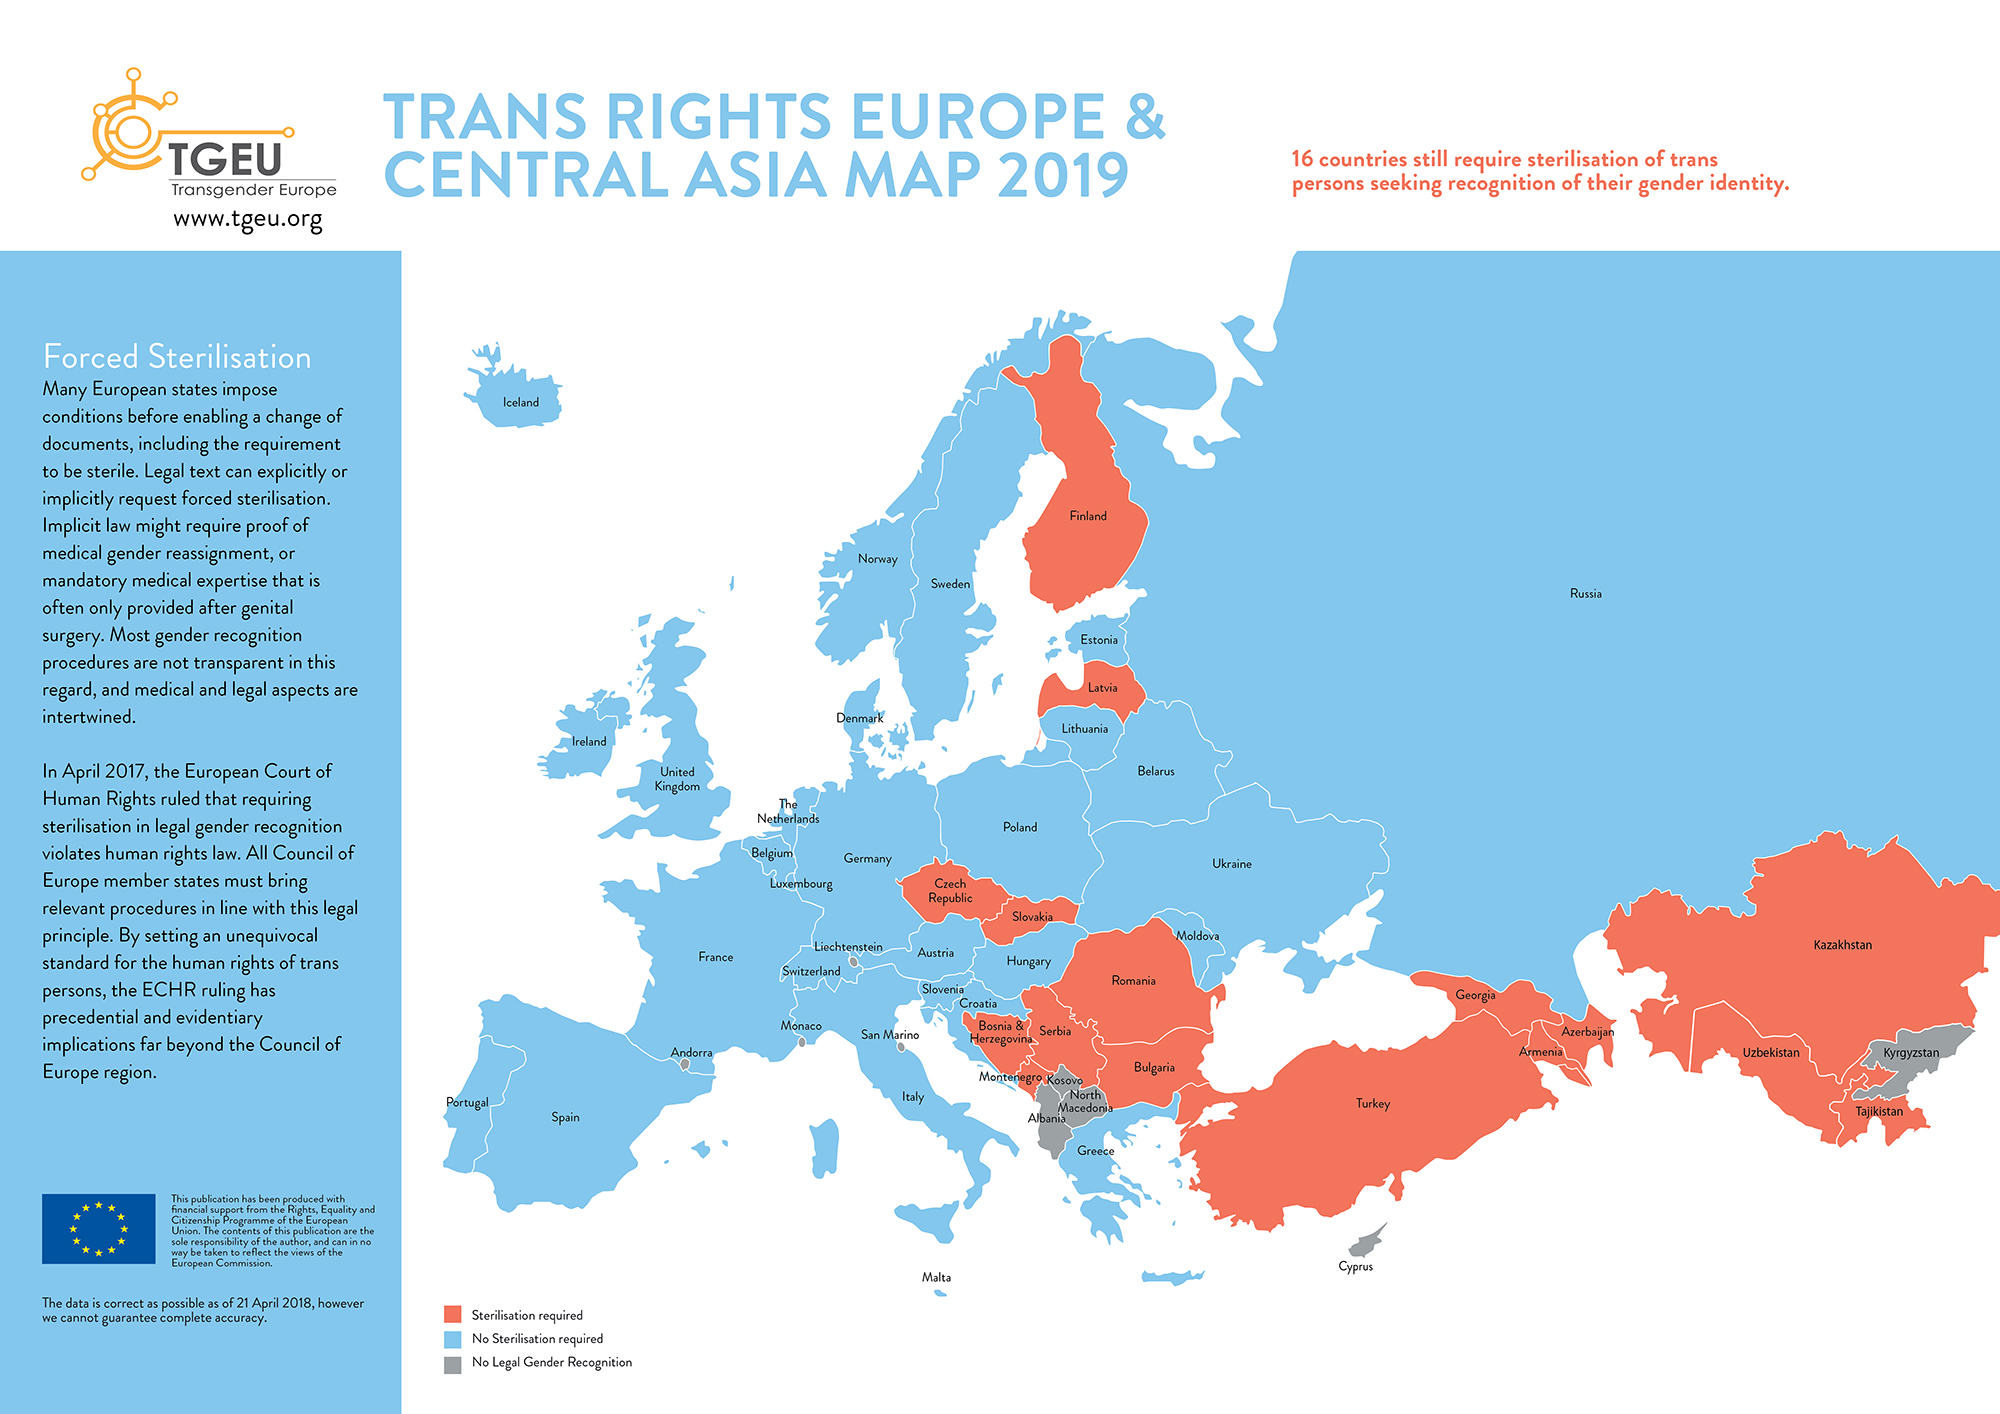 Trans Rights Europe & Central Asia Map & Index 2019